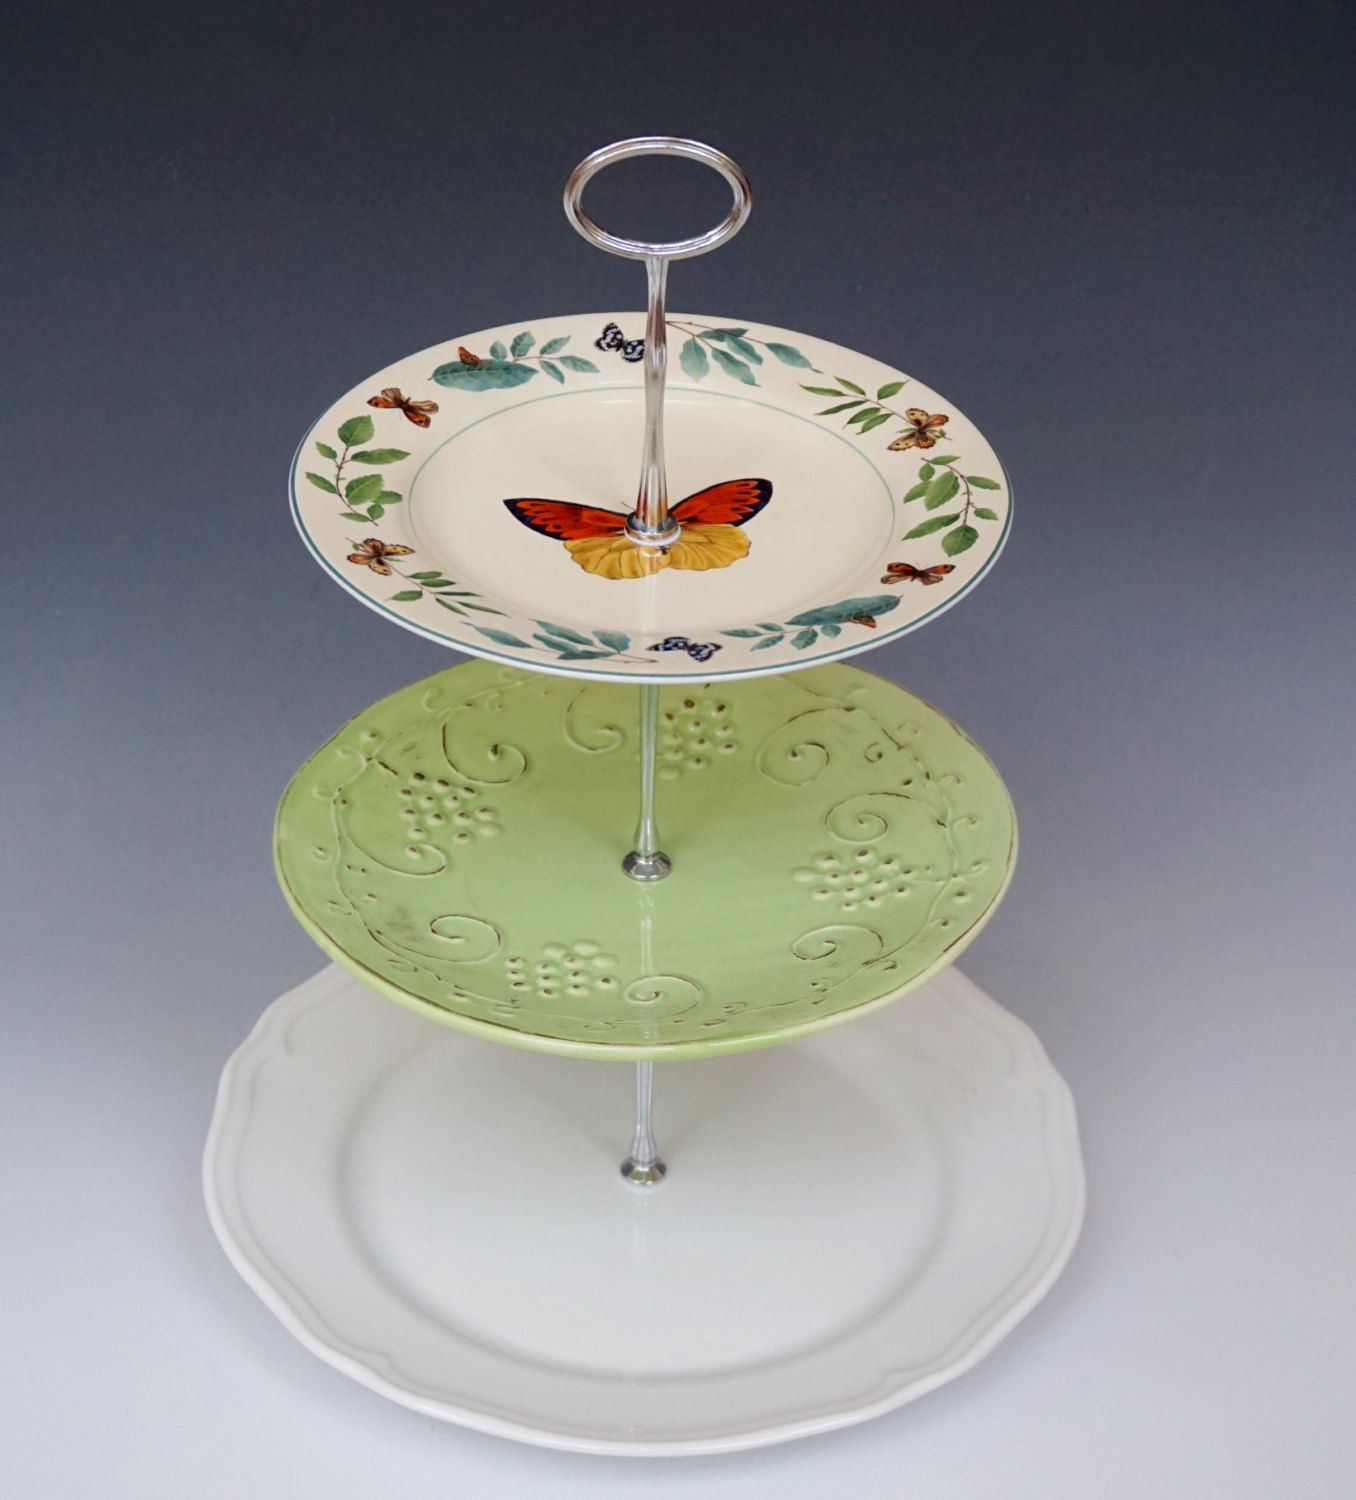 3 Tier Serving Tray Made From Italian Pottery Sakura Butterfly Plate And New Ikea Plate Base Fun Italian Pottery 3 Tier Serving Tray Italian Pottery Plates